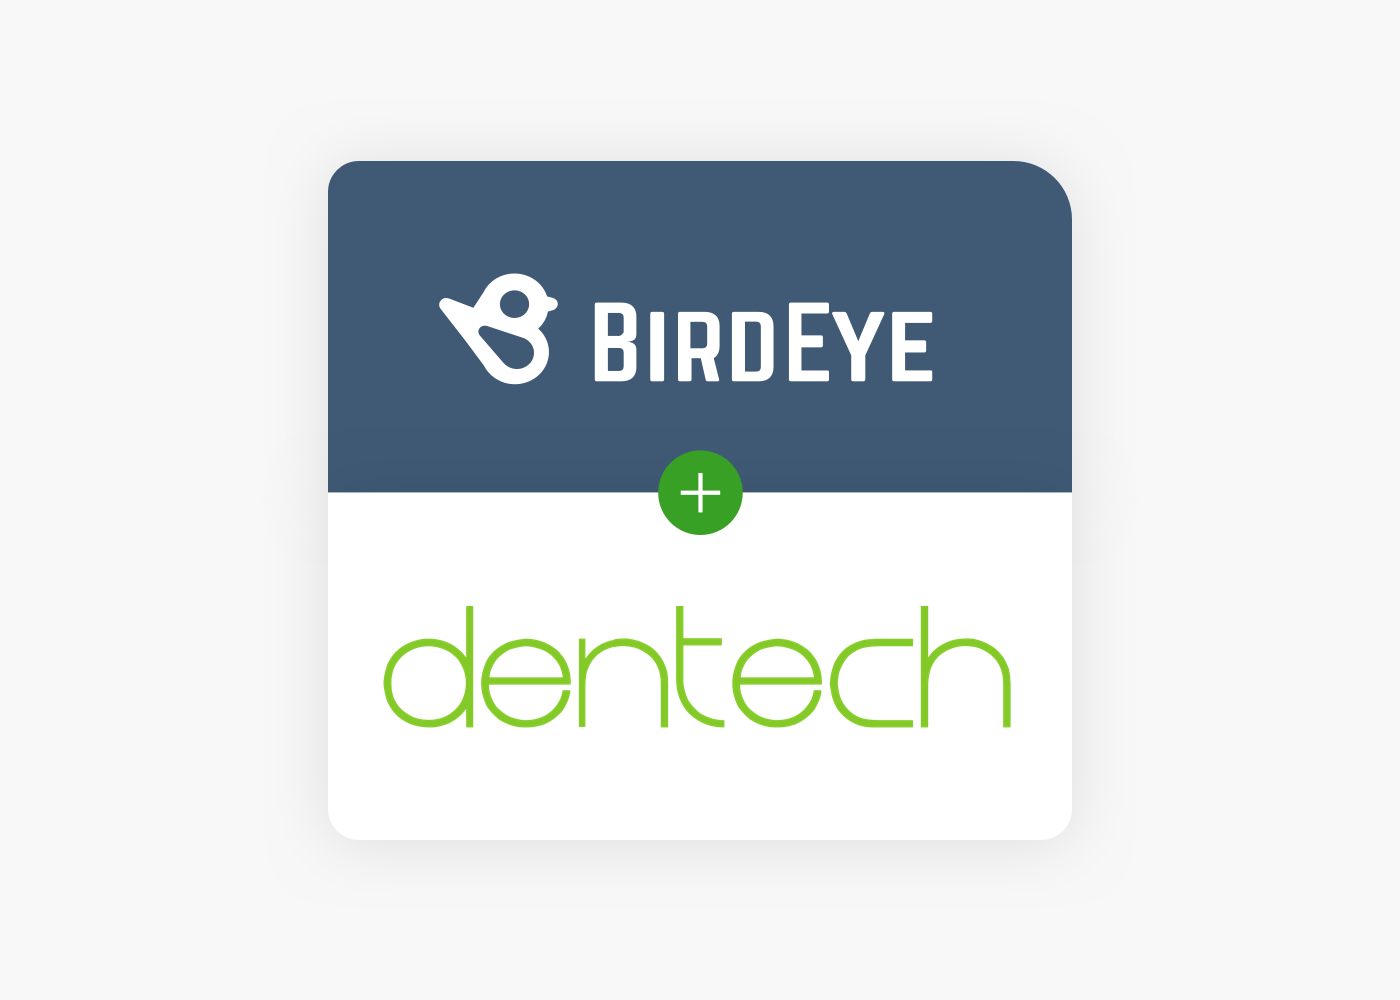 Dentech Partners With Birdeye To Ensure Quality Dental Solutions And Lifelong Patient Relationships 1555434647432